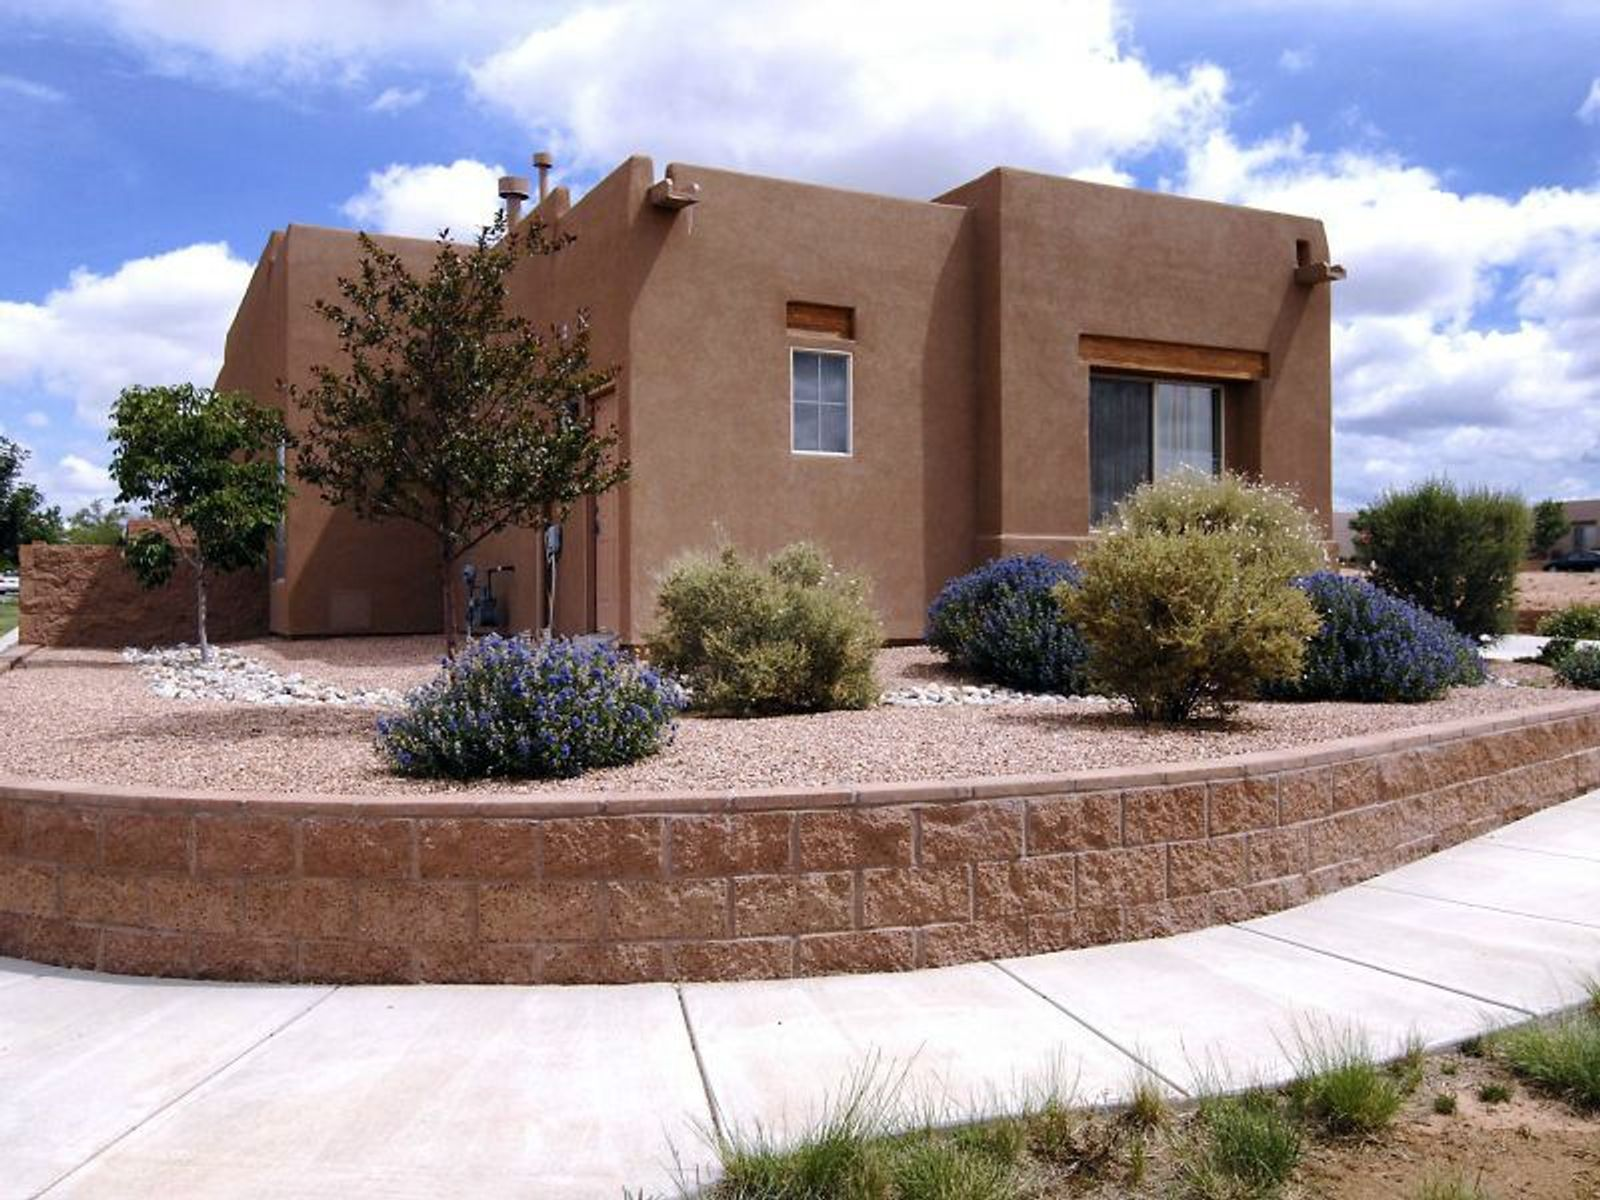 78 E. Saddleback Mesa, Santa Fe NM Single Family Home - Santa Fe Real Estate